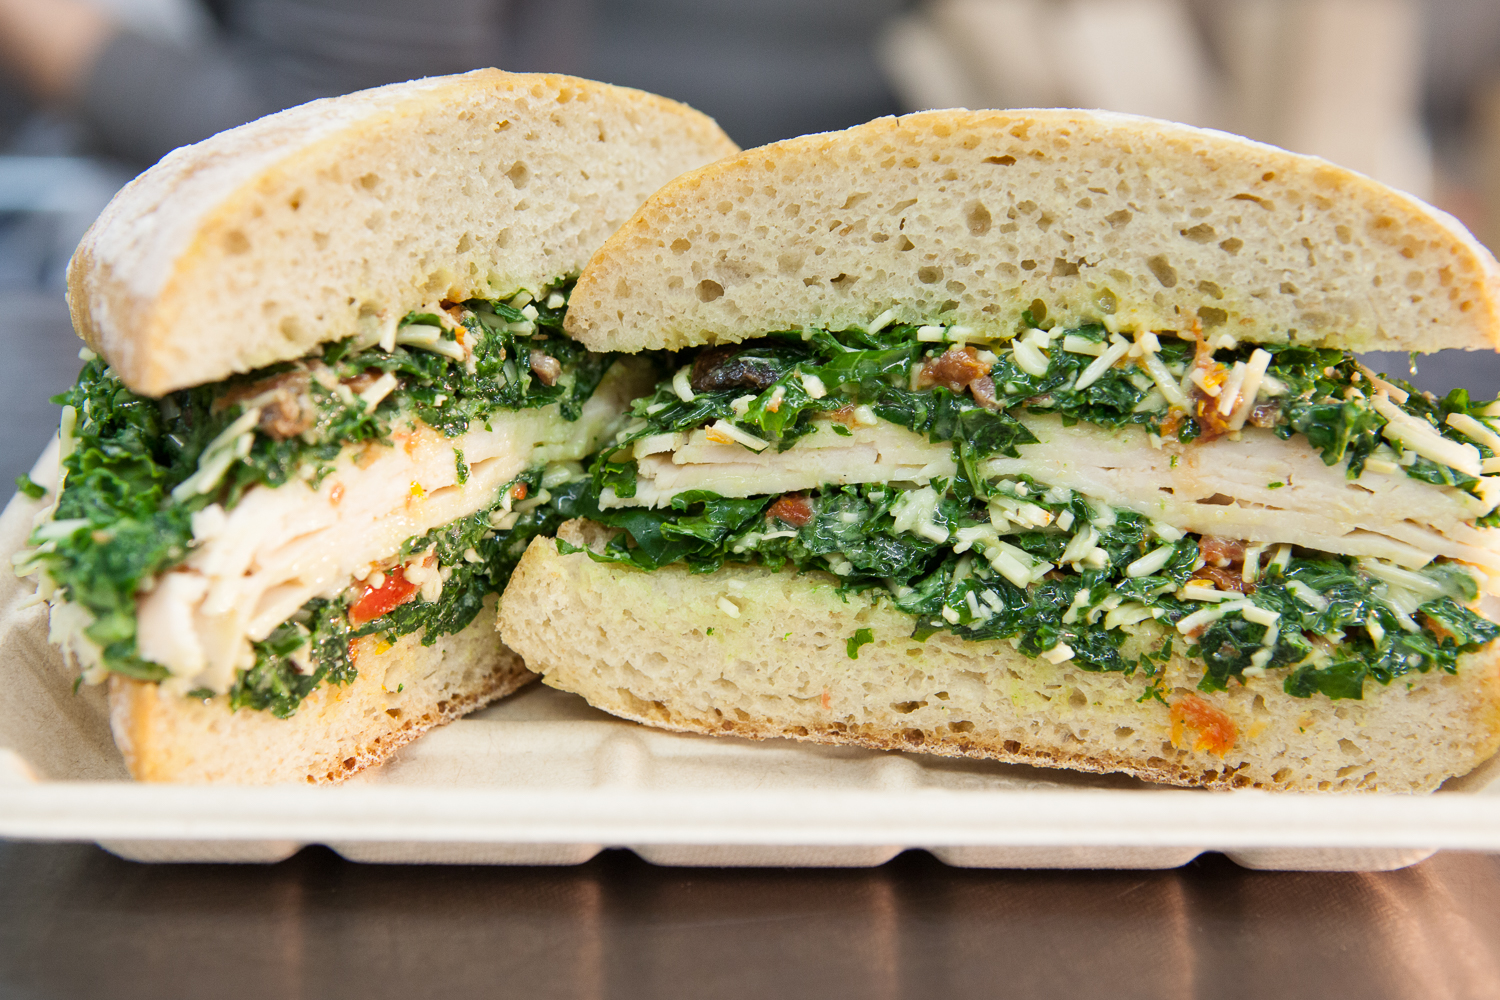 organic-sandwiches-prepared-daily-by-mana-foods-deli.jpg